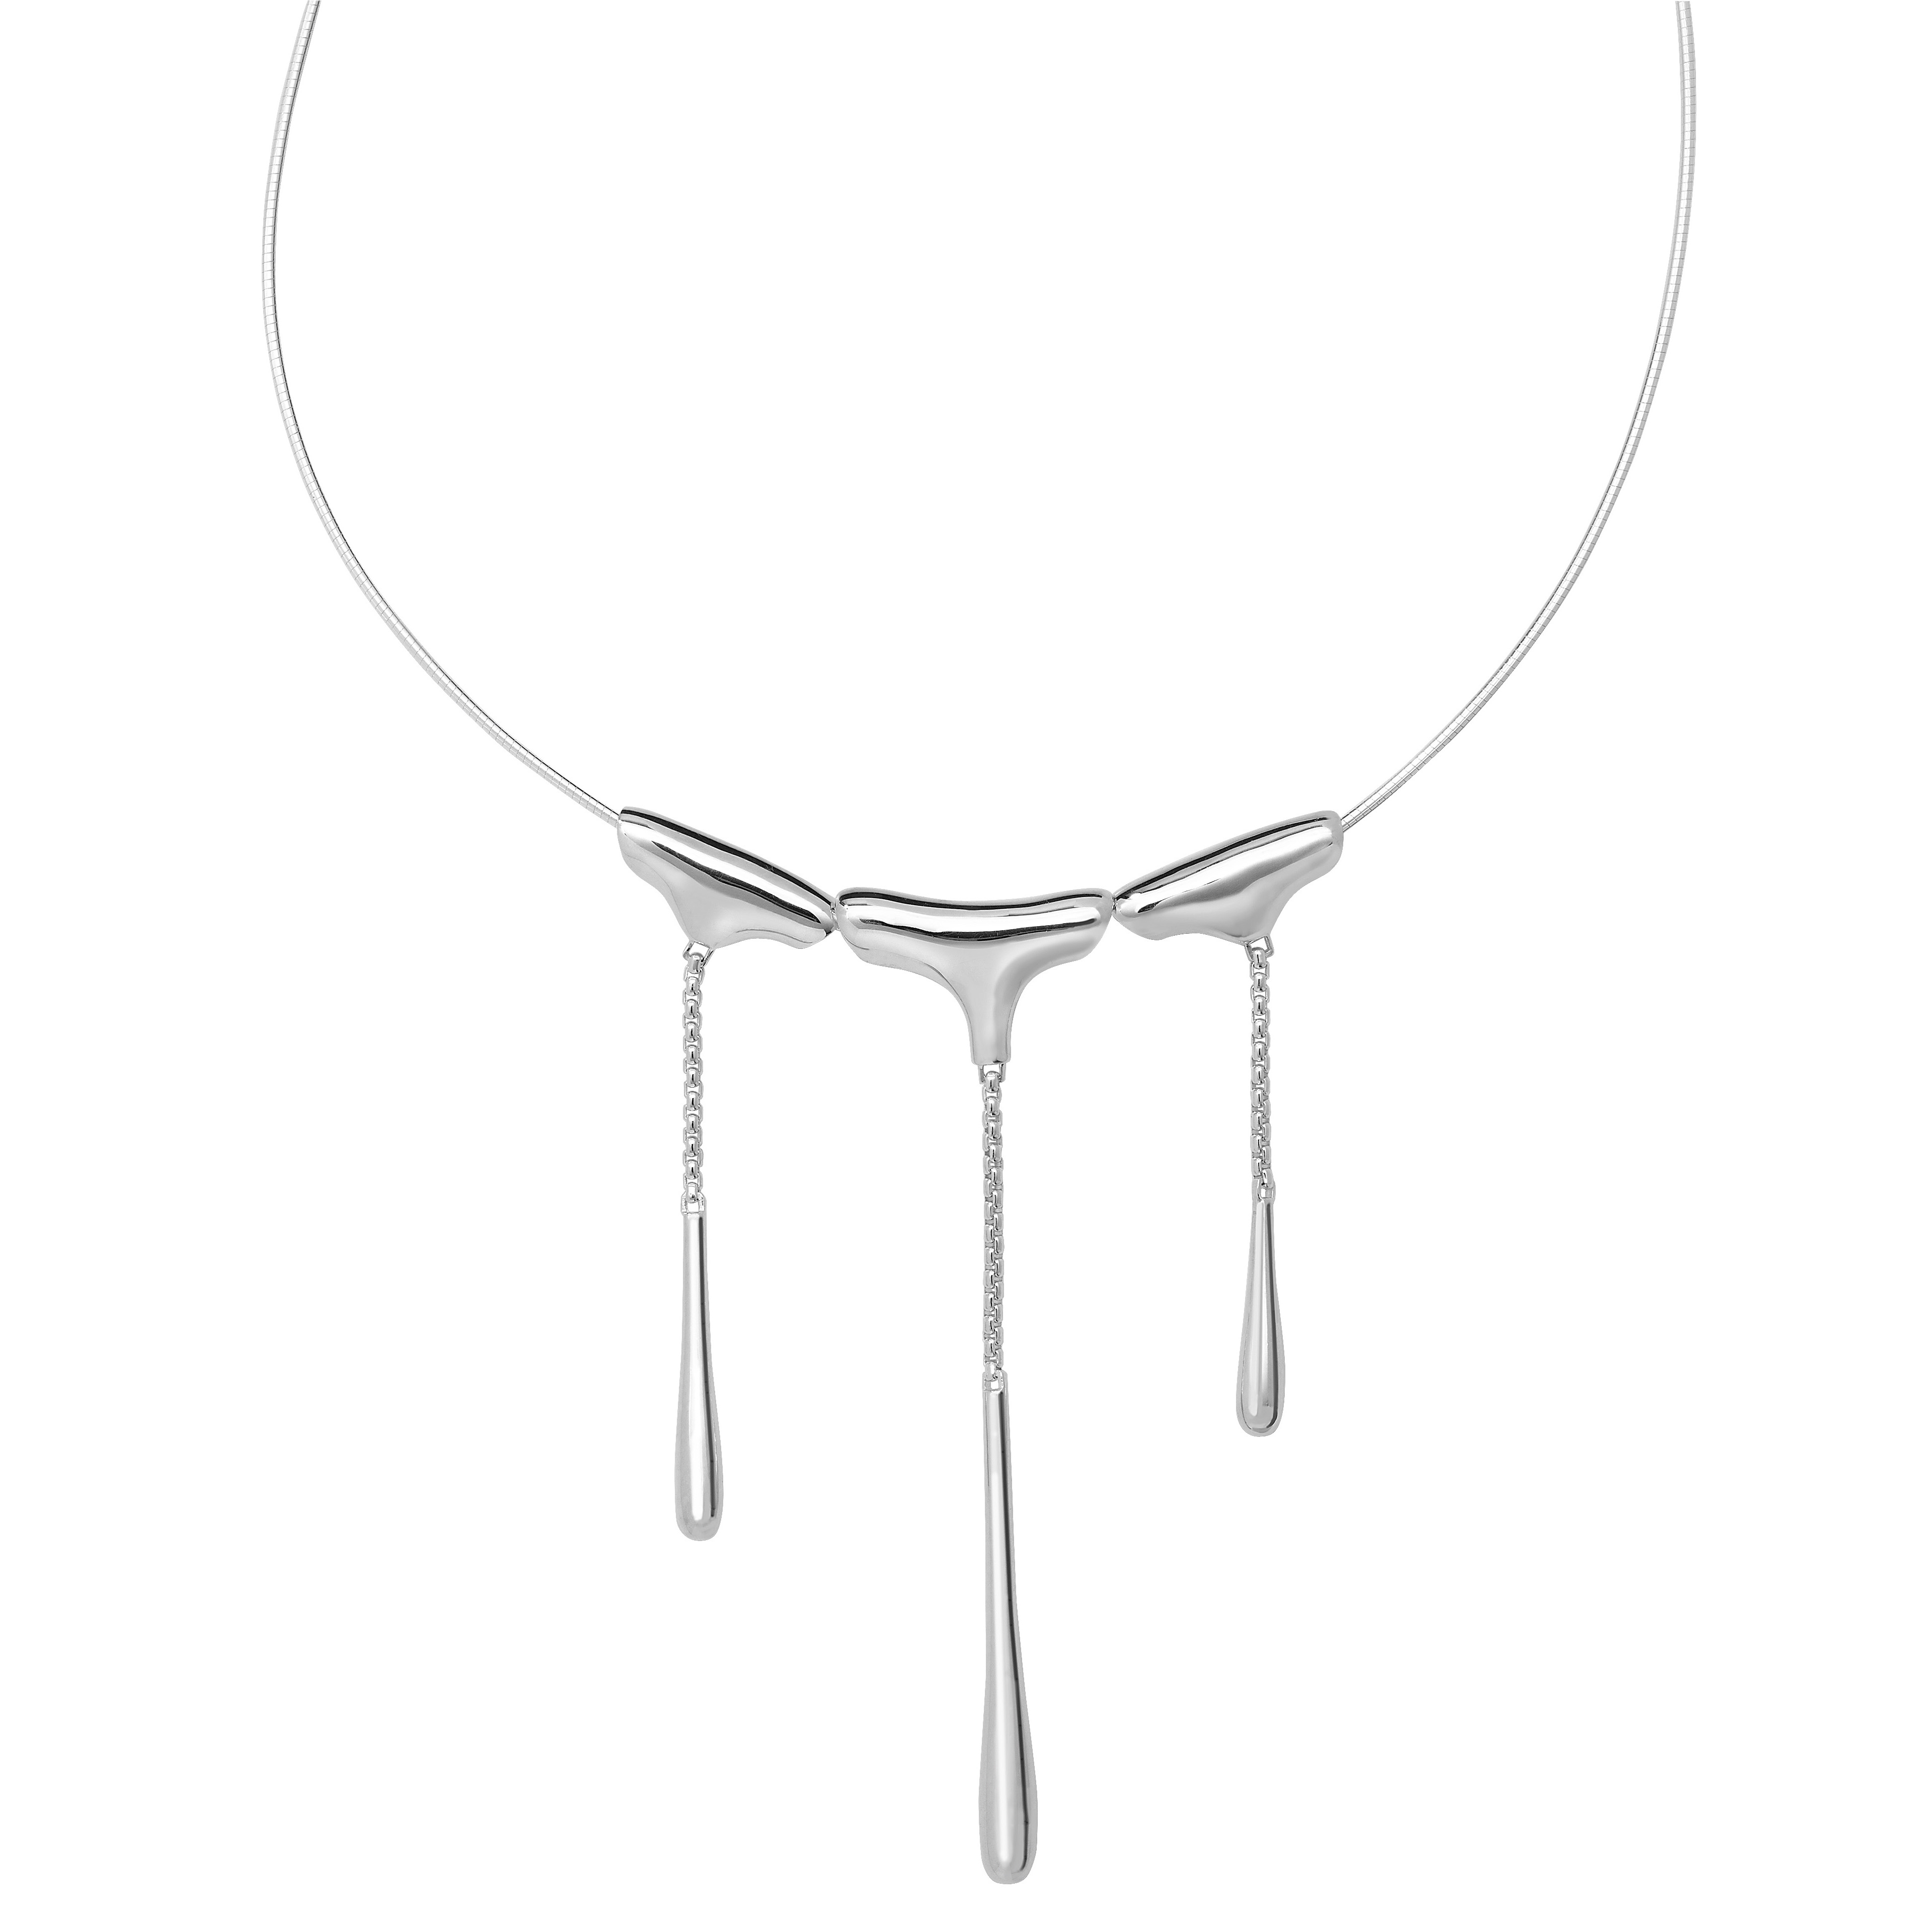 Lucy Q Three-Drip Necklace